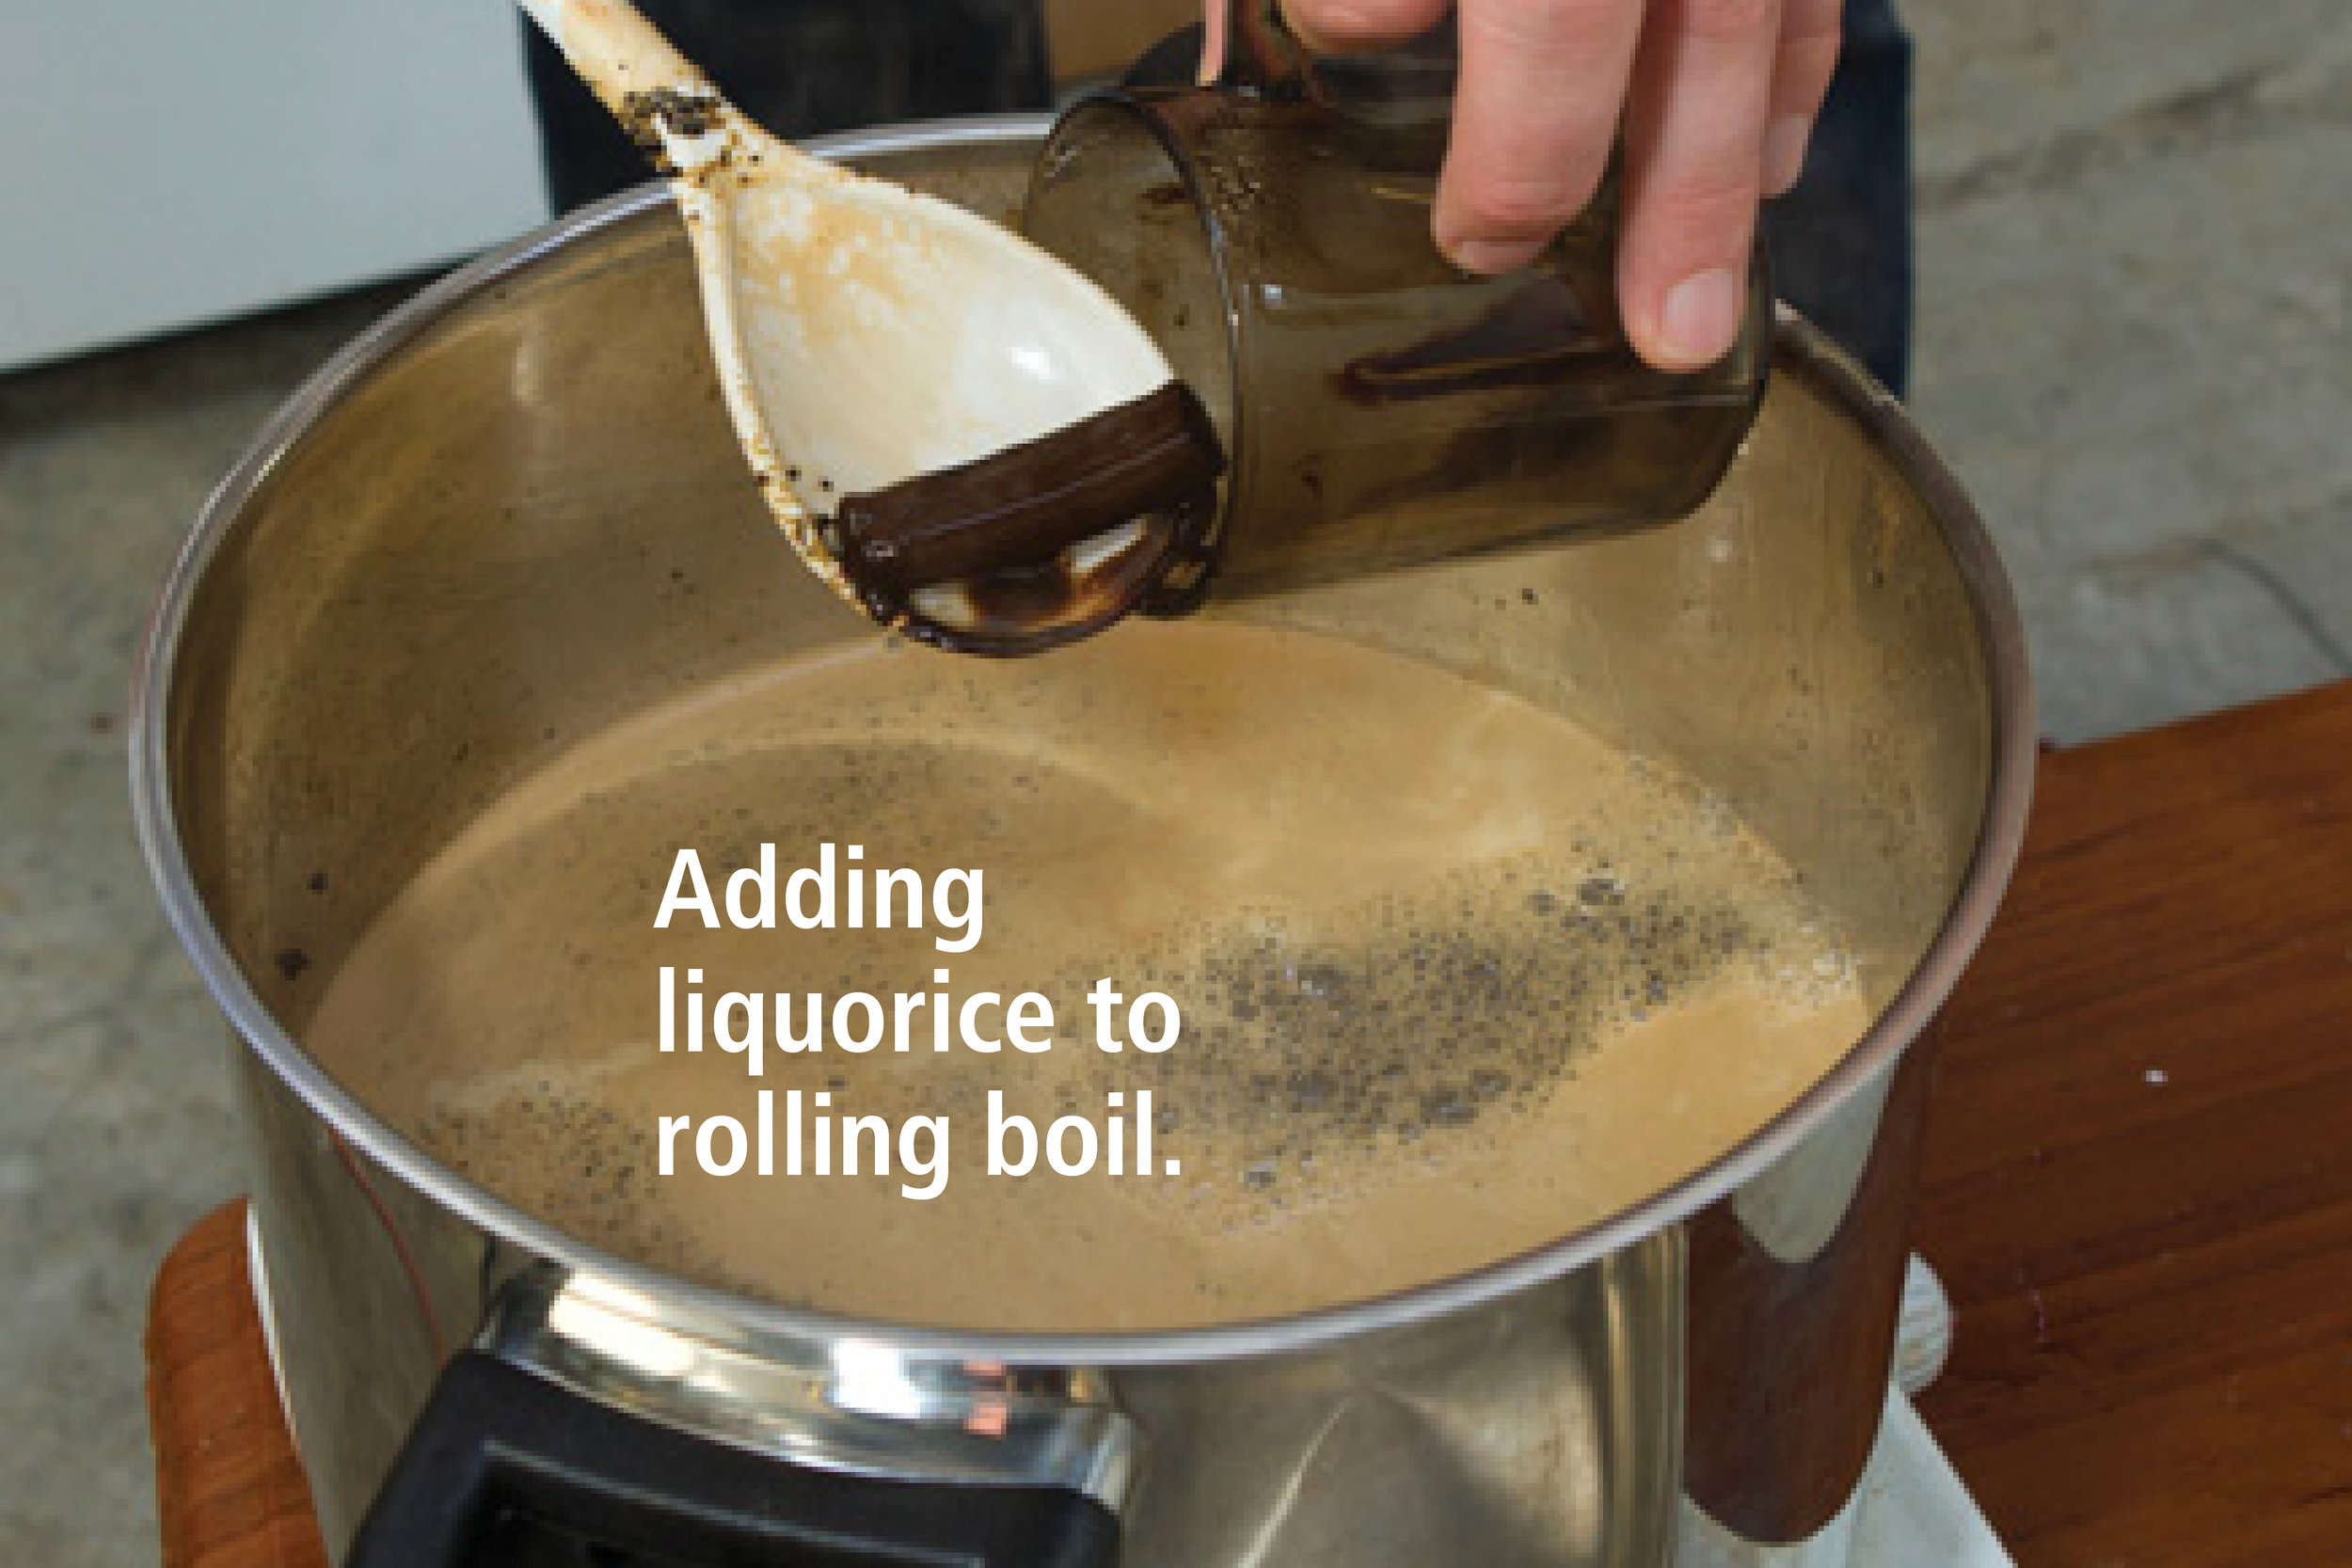 licourice to boil.jpg